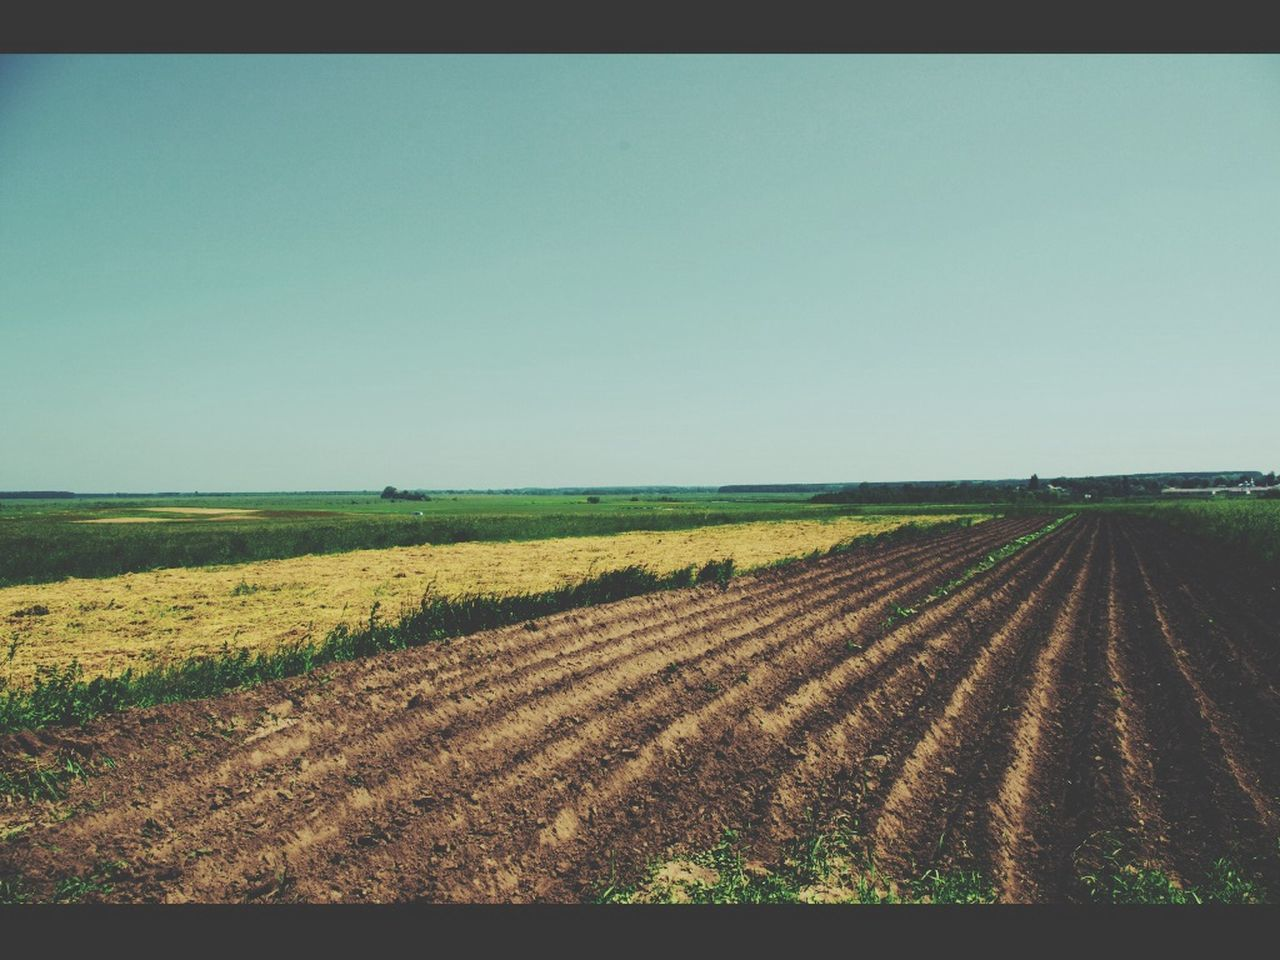 agriculture, field, landscape, rural scene, farm, nature, beauty in nature, copy space, growth, tranquility, crop, tranquil scene, clear sky, scenics, no people, day, outdoors, sky, plowed field